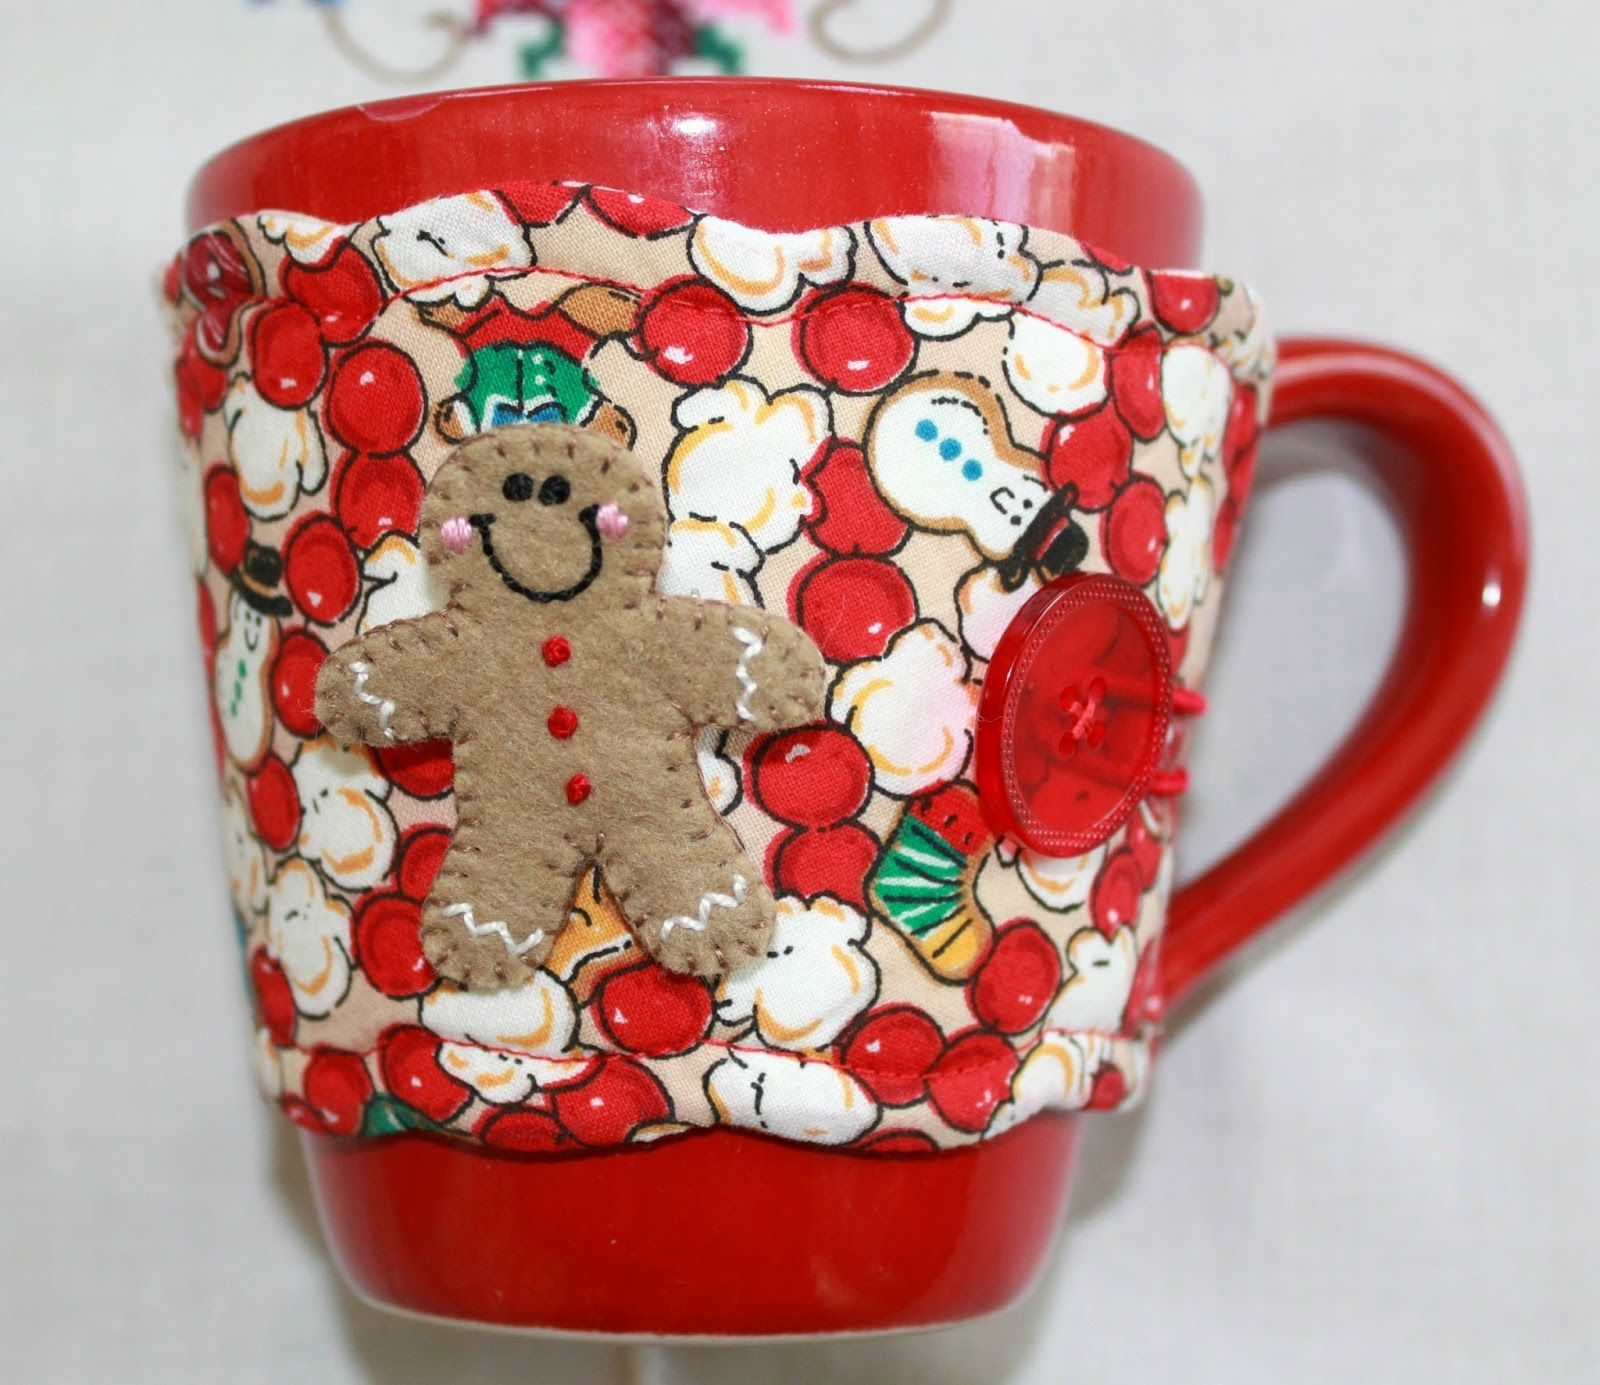 Sew Much 2 Luv: A bit of Christmas Cheer :)